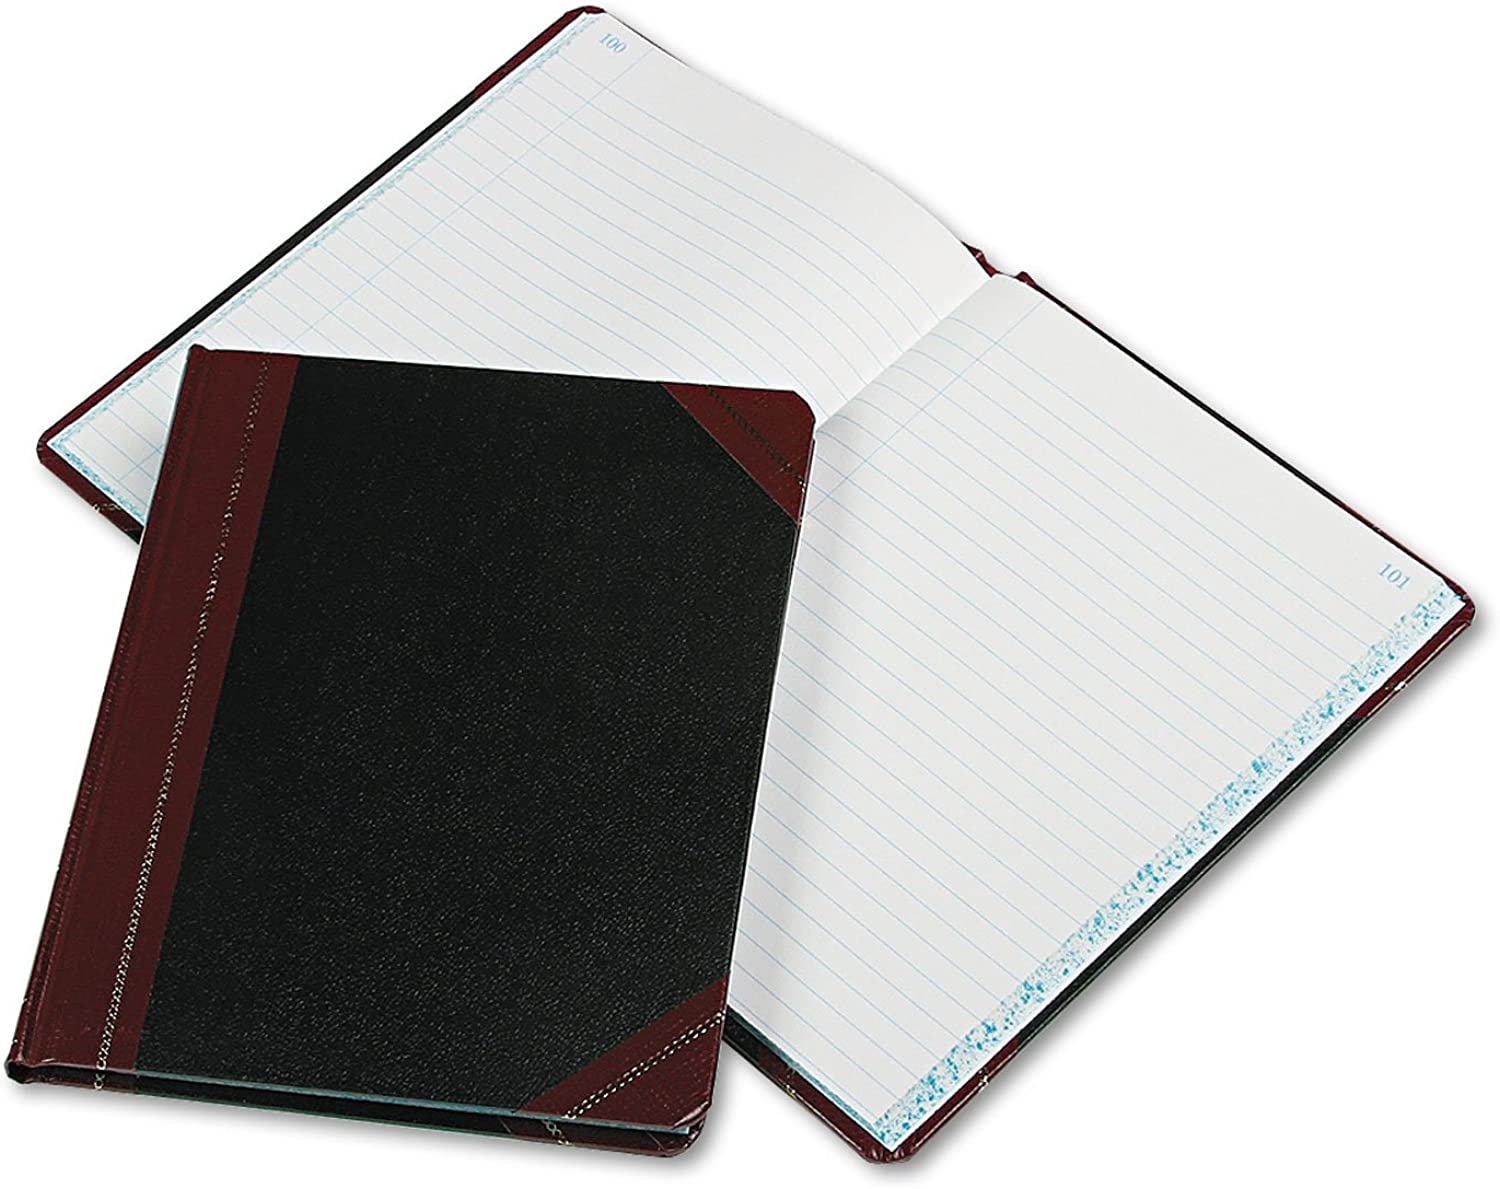 Boorum & Pease 38-150-R Record Account Book- Record Rule- Black Red- 150 Pages- 9 5 8 x 7 5 8